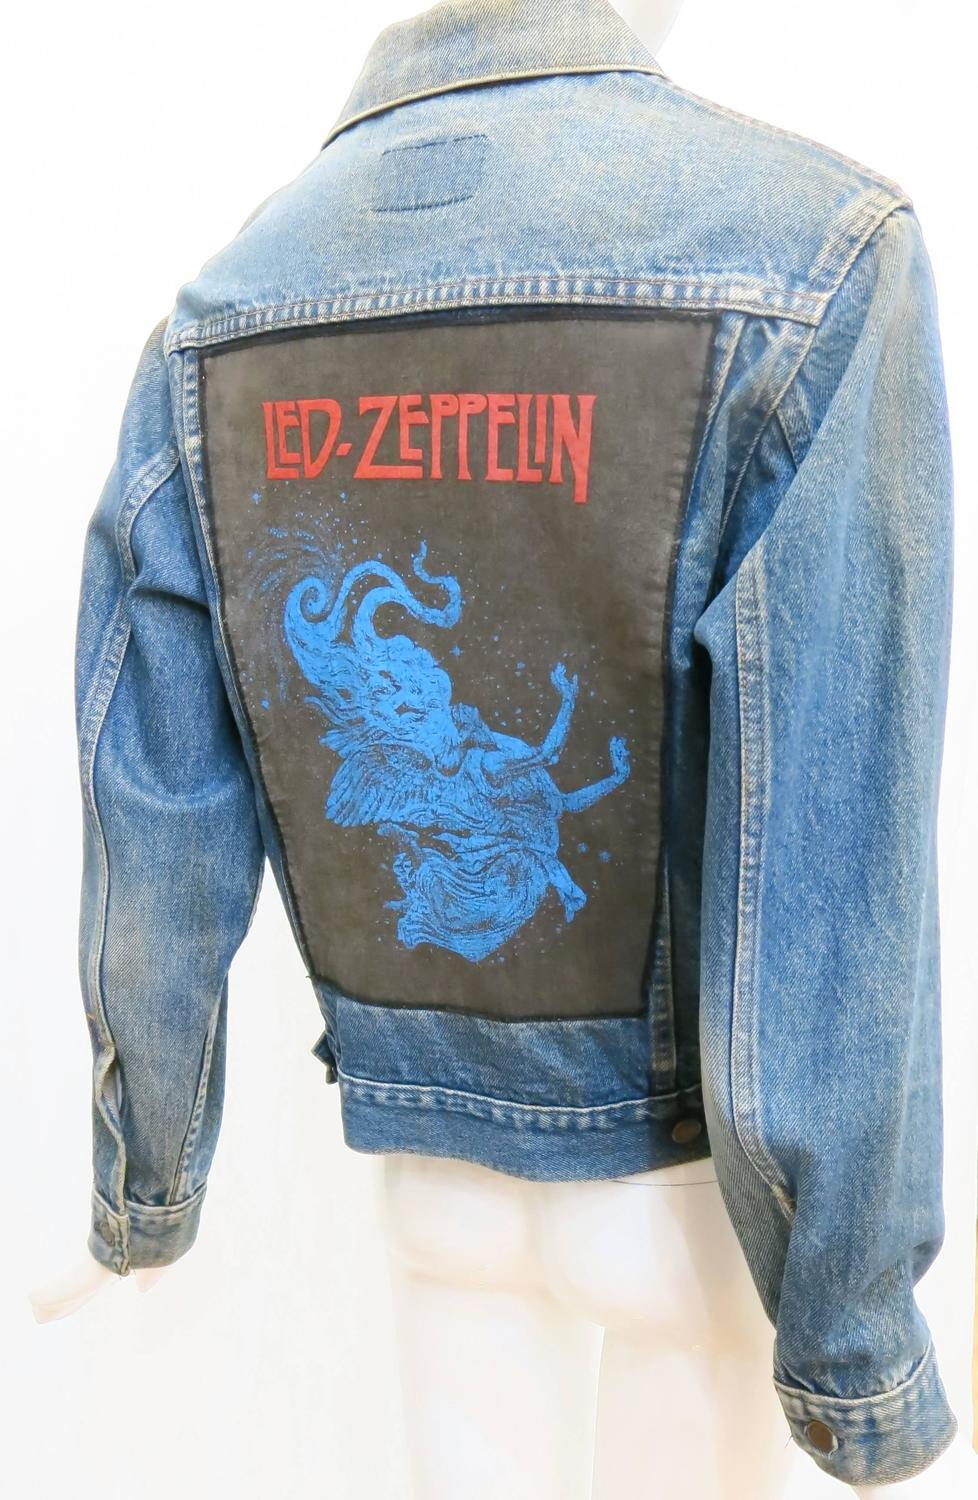 1970s Sears Roebuck And Co Led Zeppelin Denim Jacket At